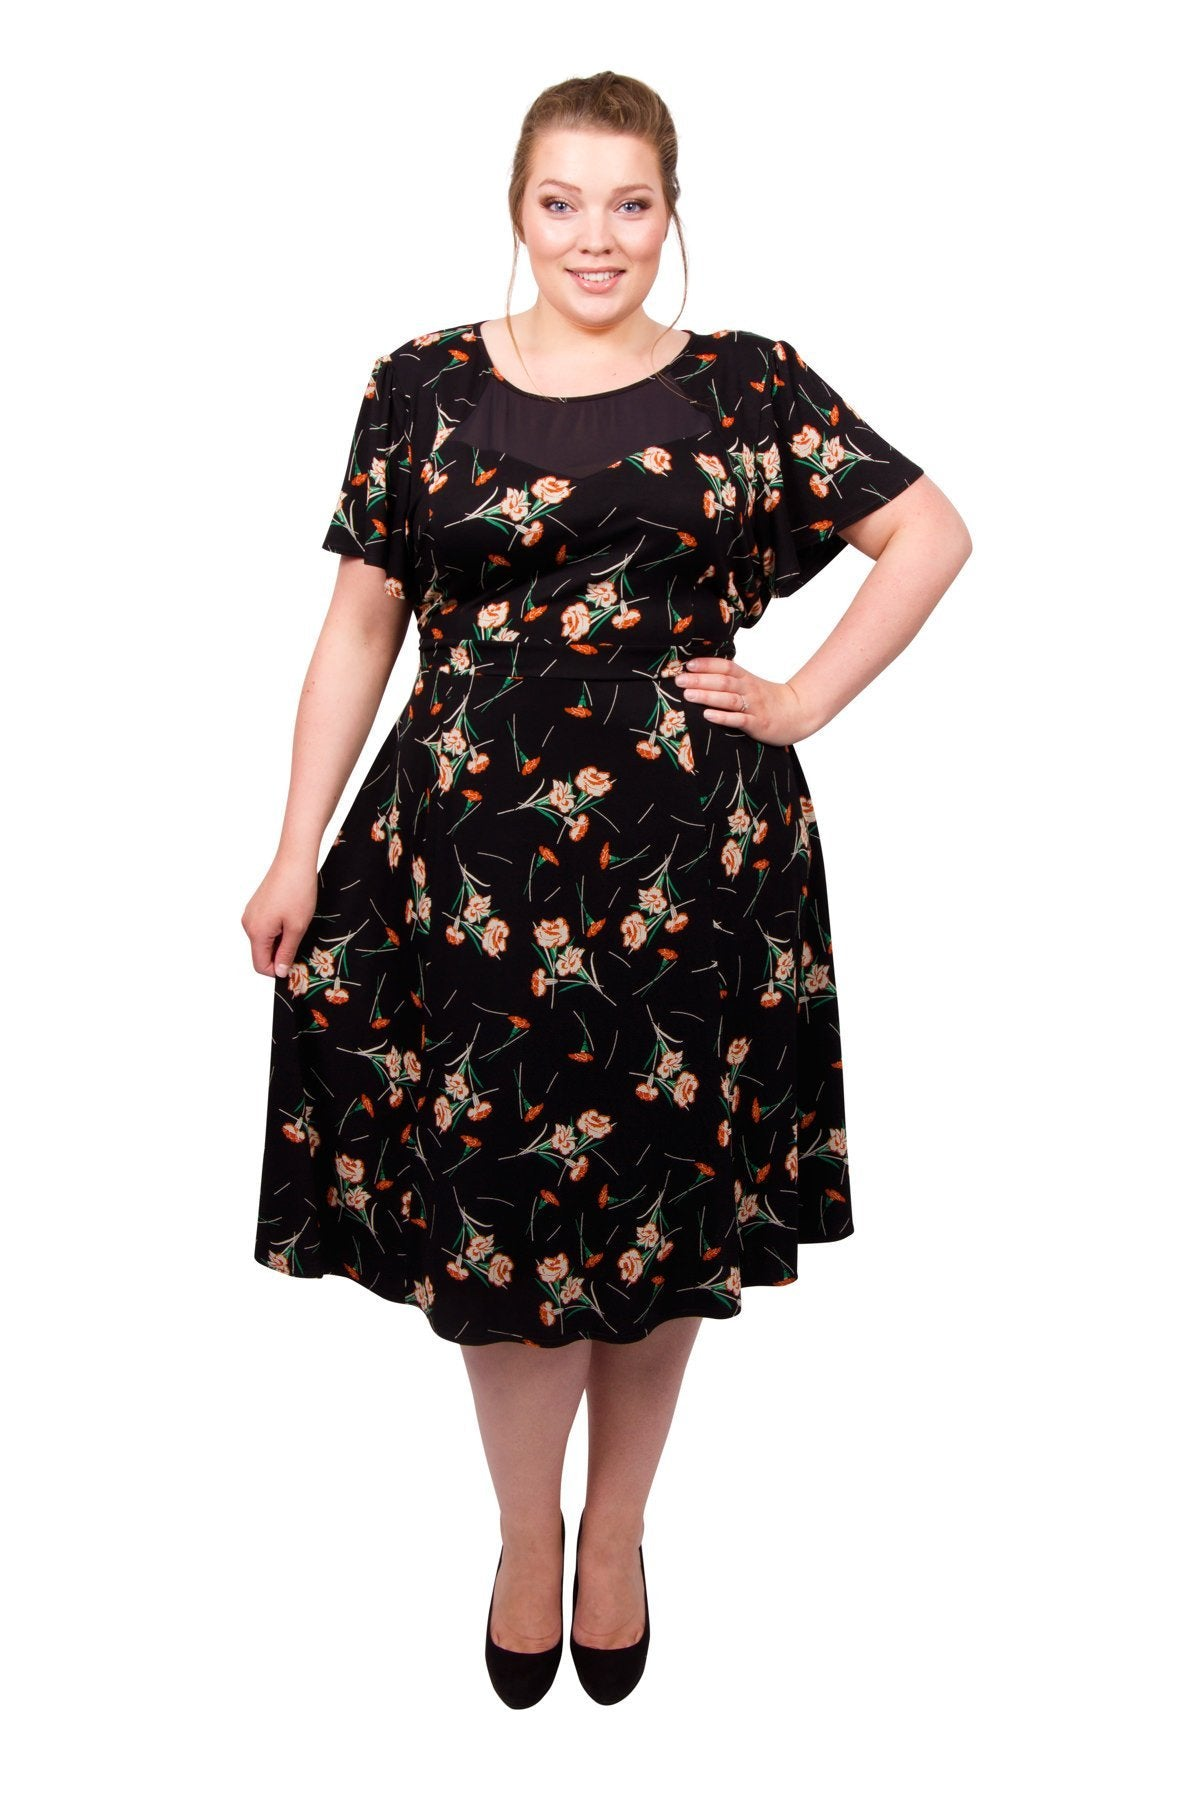 1940s Plus Size Fashion: Style Advice from 1940s to Today 40s Sweetheart Mesh Panelled Dress - Black  10 �50.00 AT vintagedancer.com